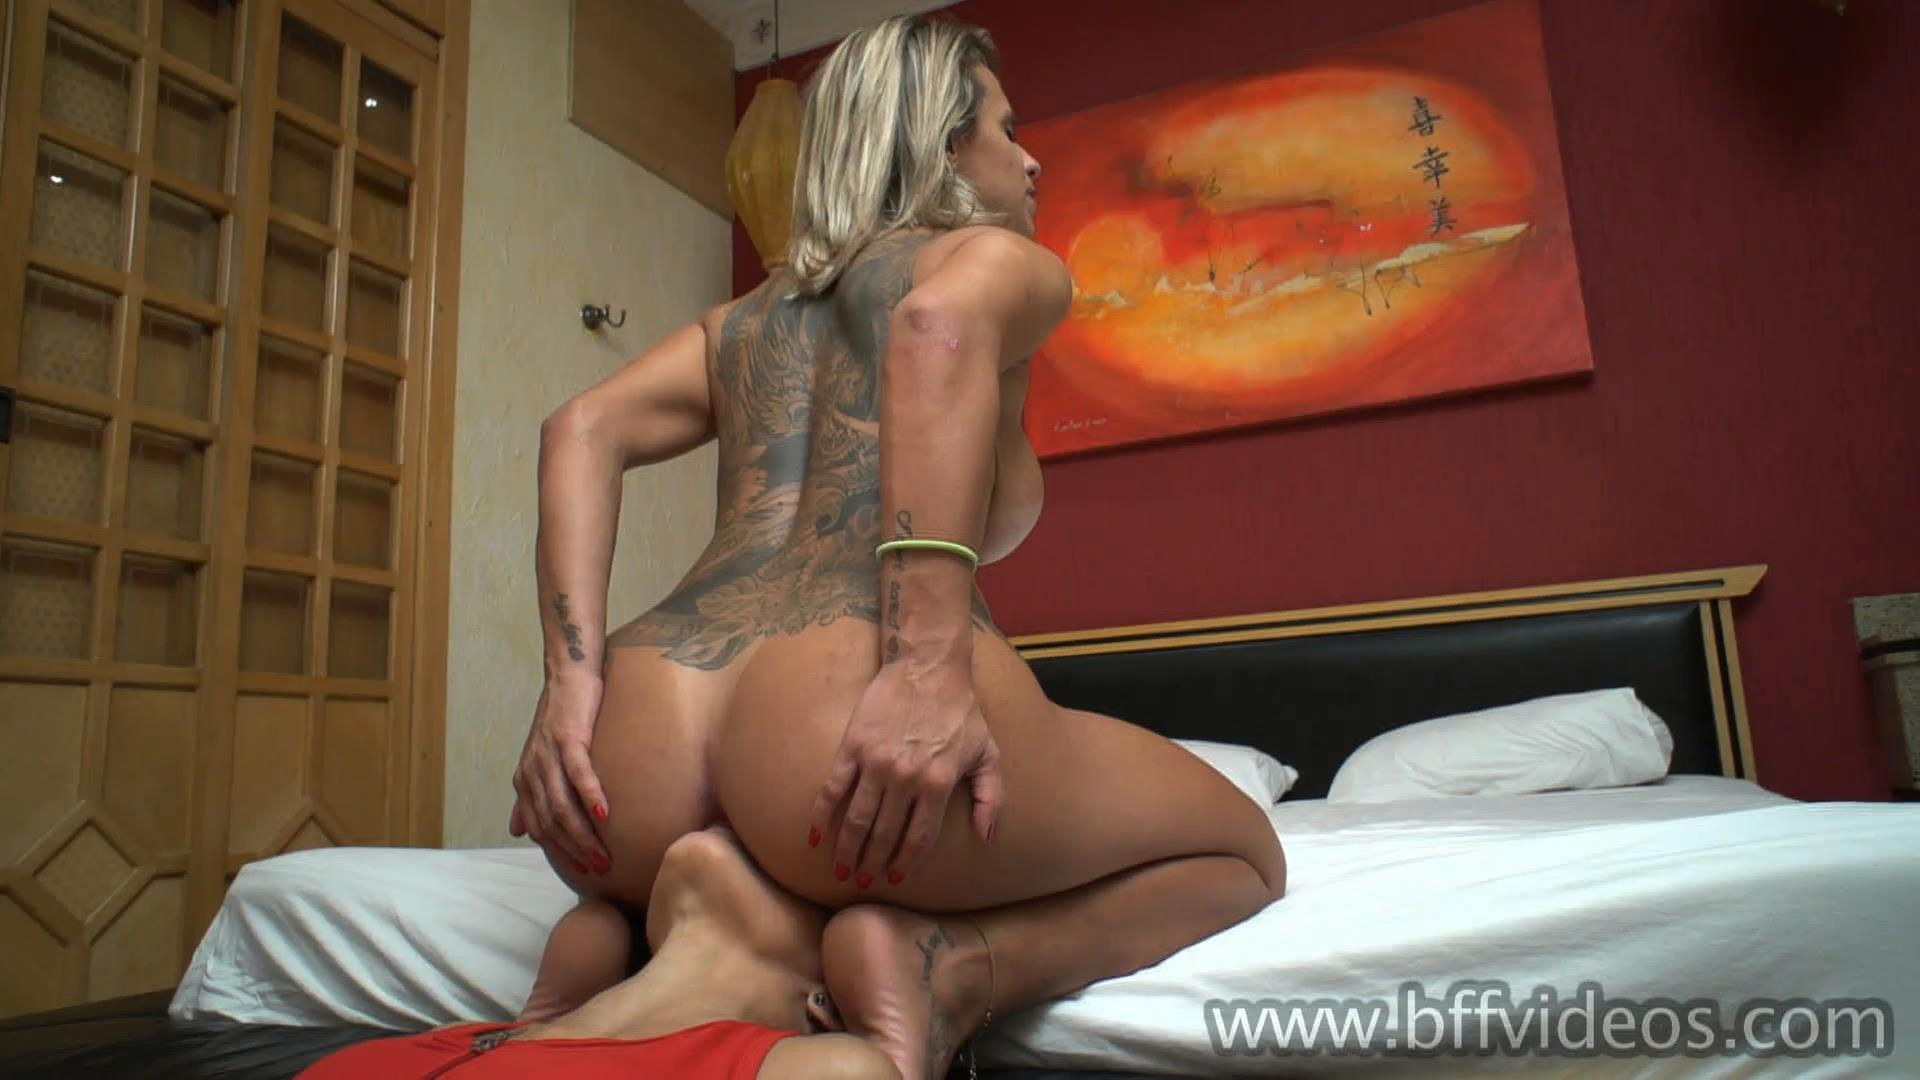 Domme Olivia In Scene: Olivia Ass Domination Full - BFFVIDEOS - FULL HD/1080p/MP4